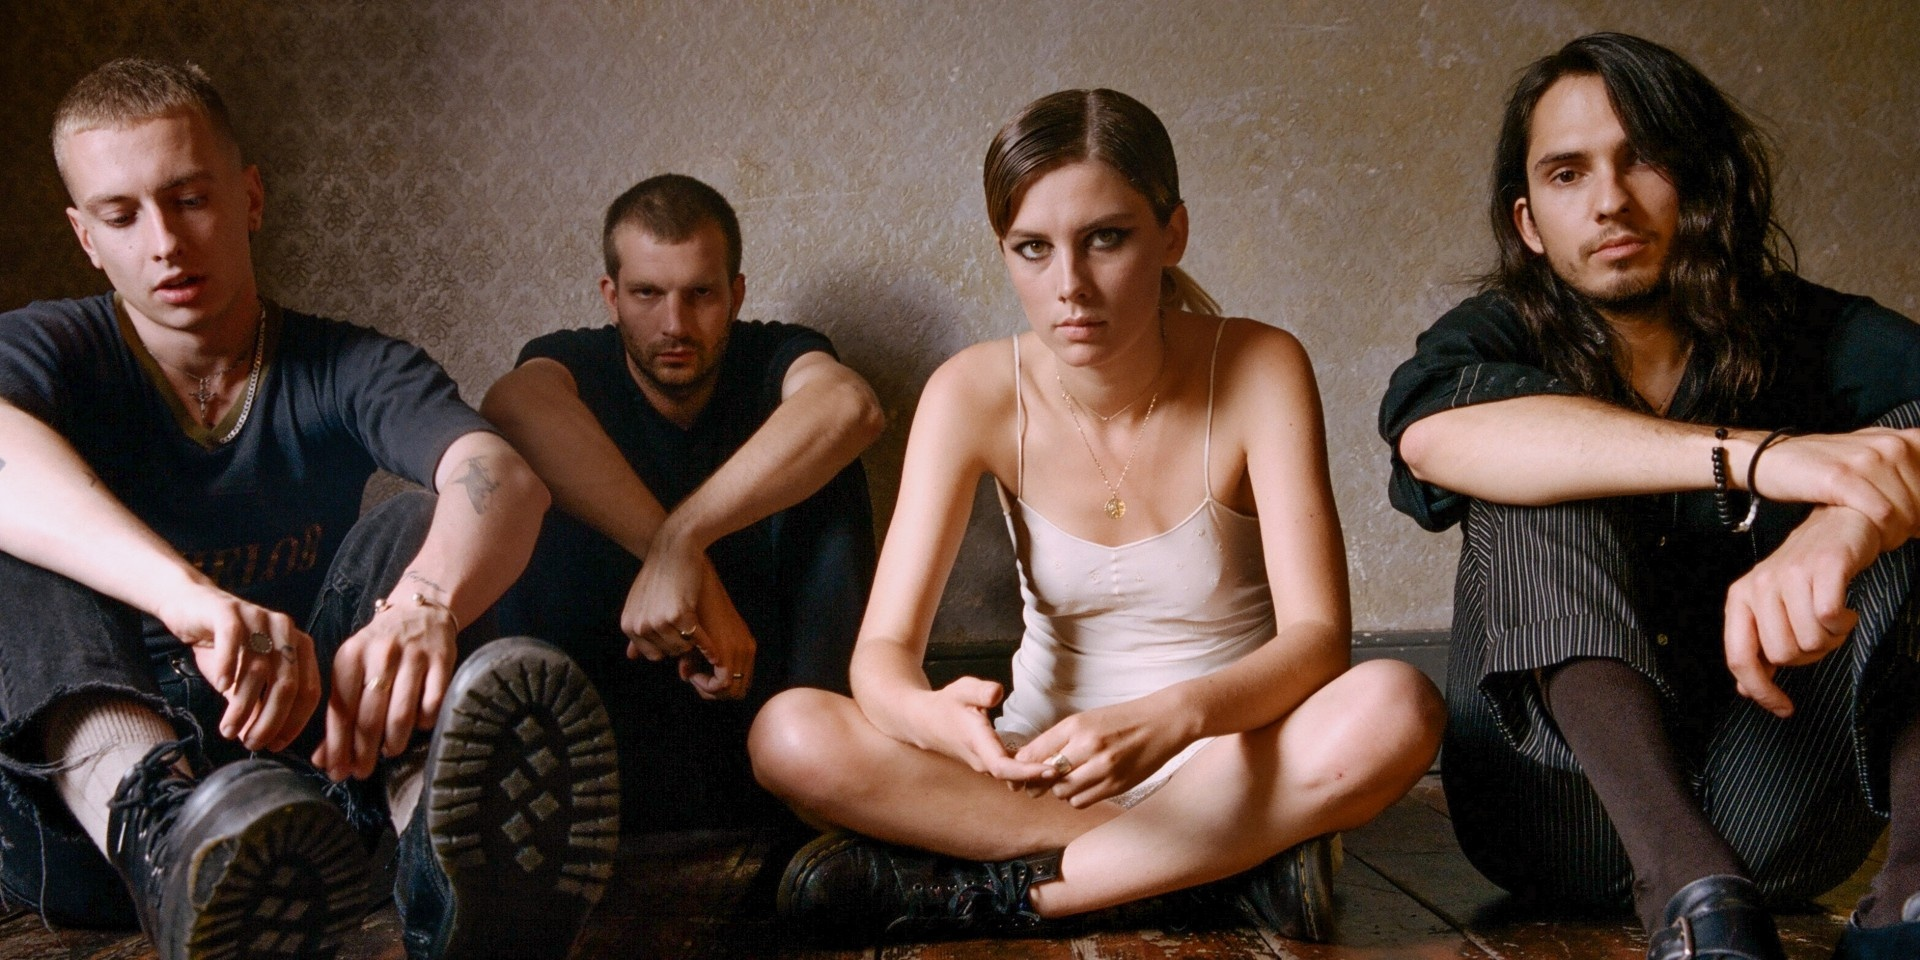 """We don't bend towards other people's rules"": Wolf Alice's Ellie Rowsell on the merits of being uncompromising"